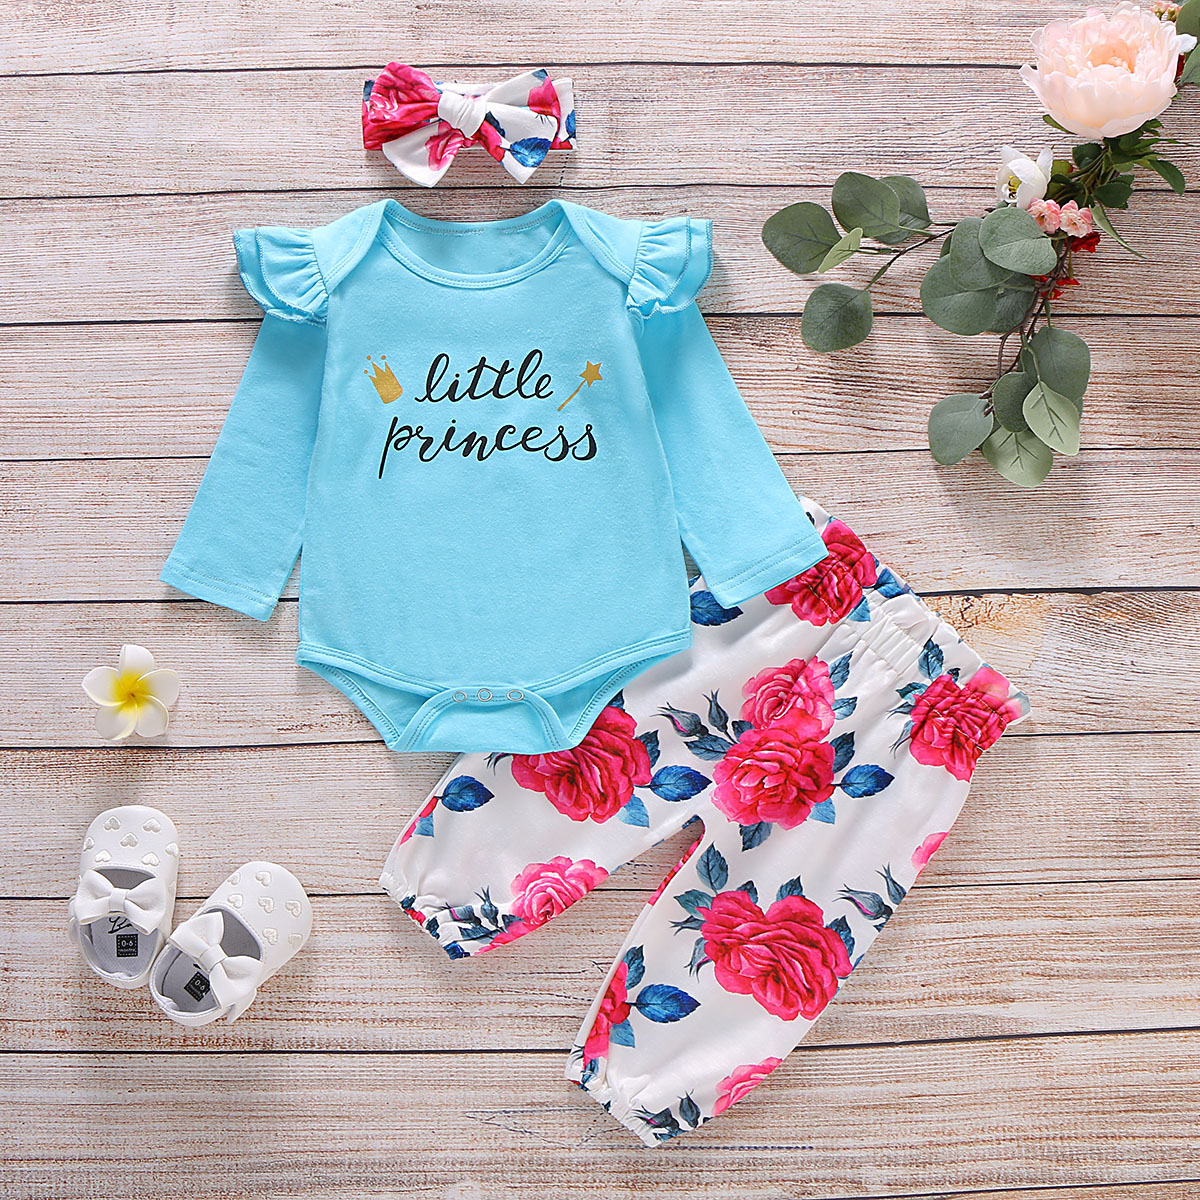 CoKate 3pcs Newborn Infant Baby Girls Clothes Romper Pant with Headband